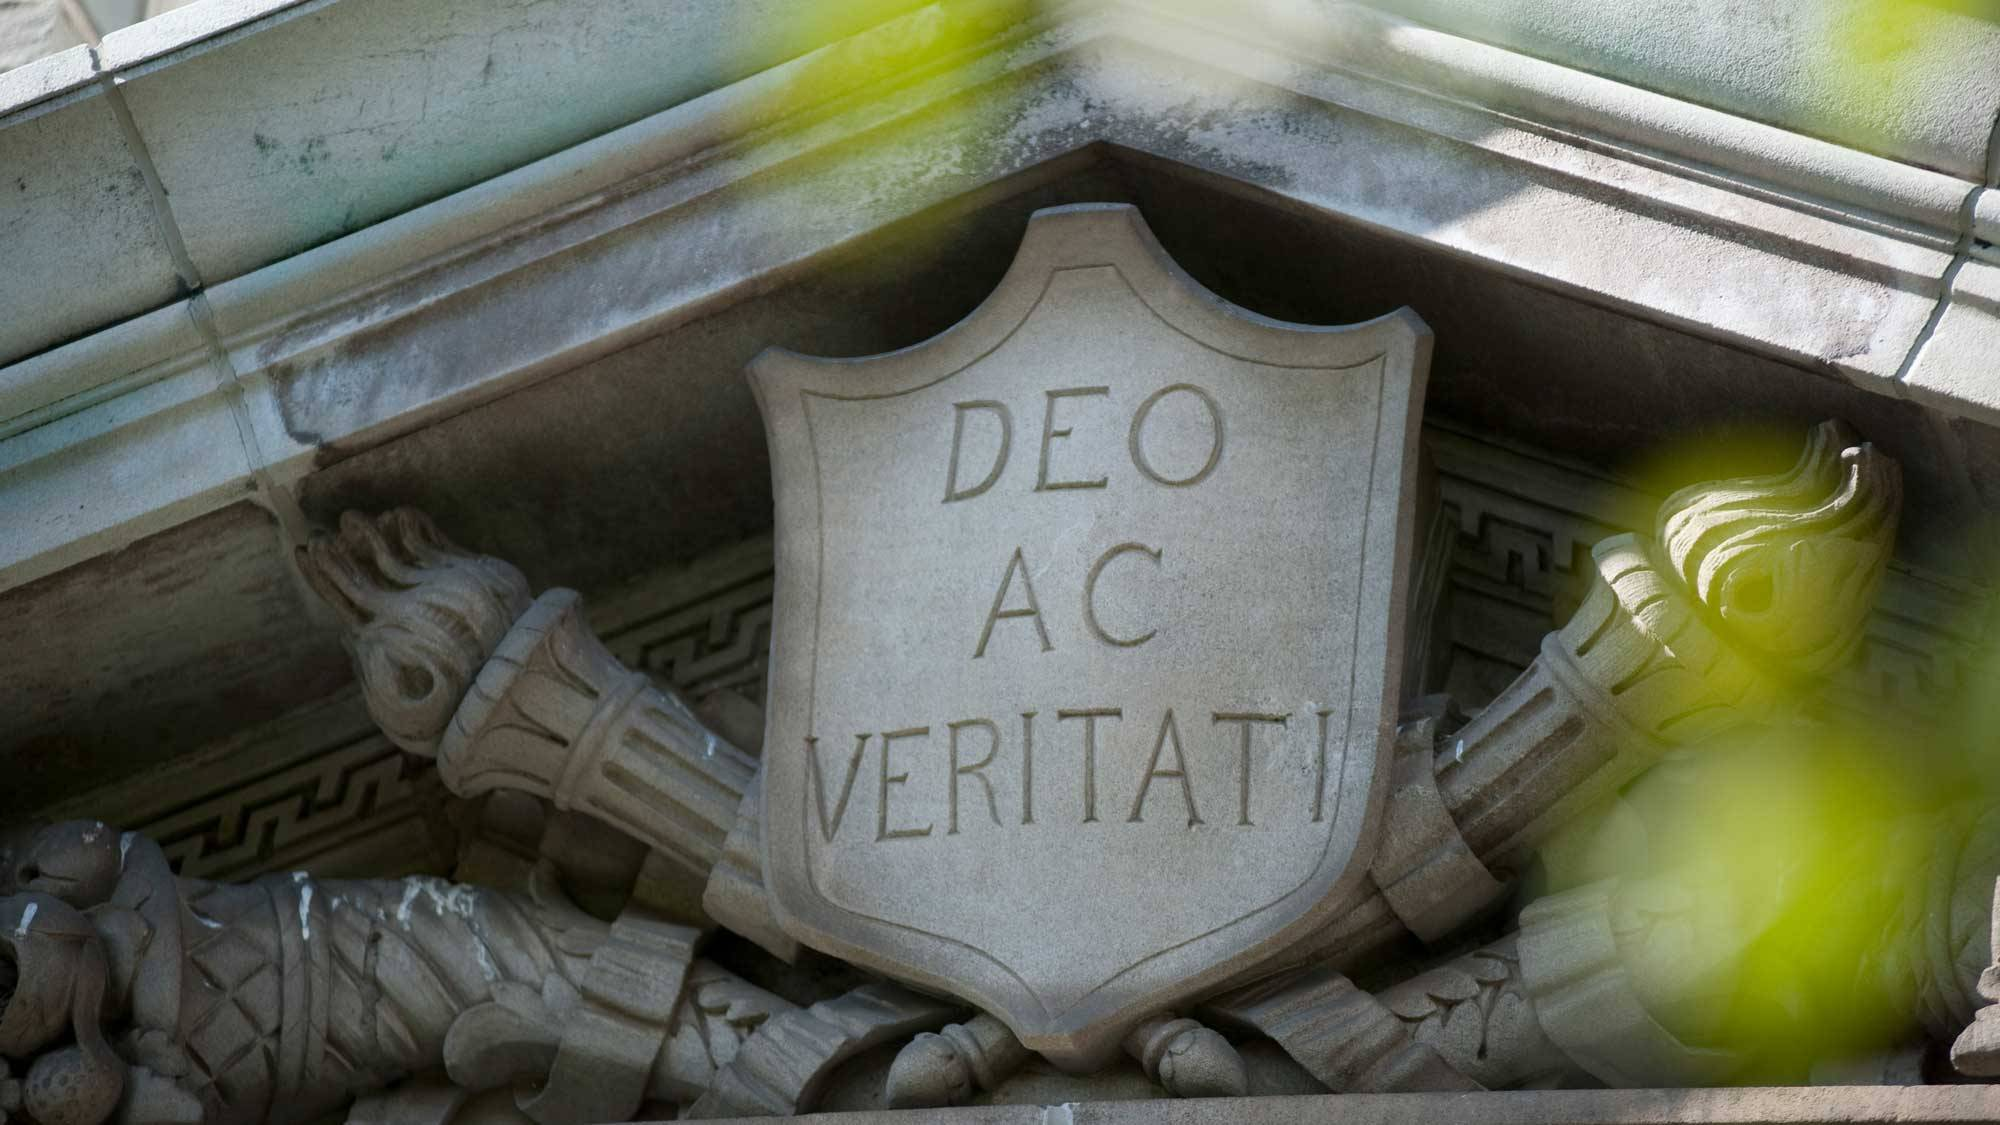 Deo Ac Veritati inscribed on stone shield